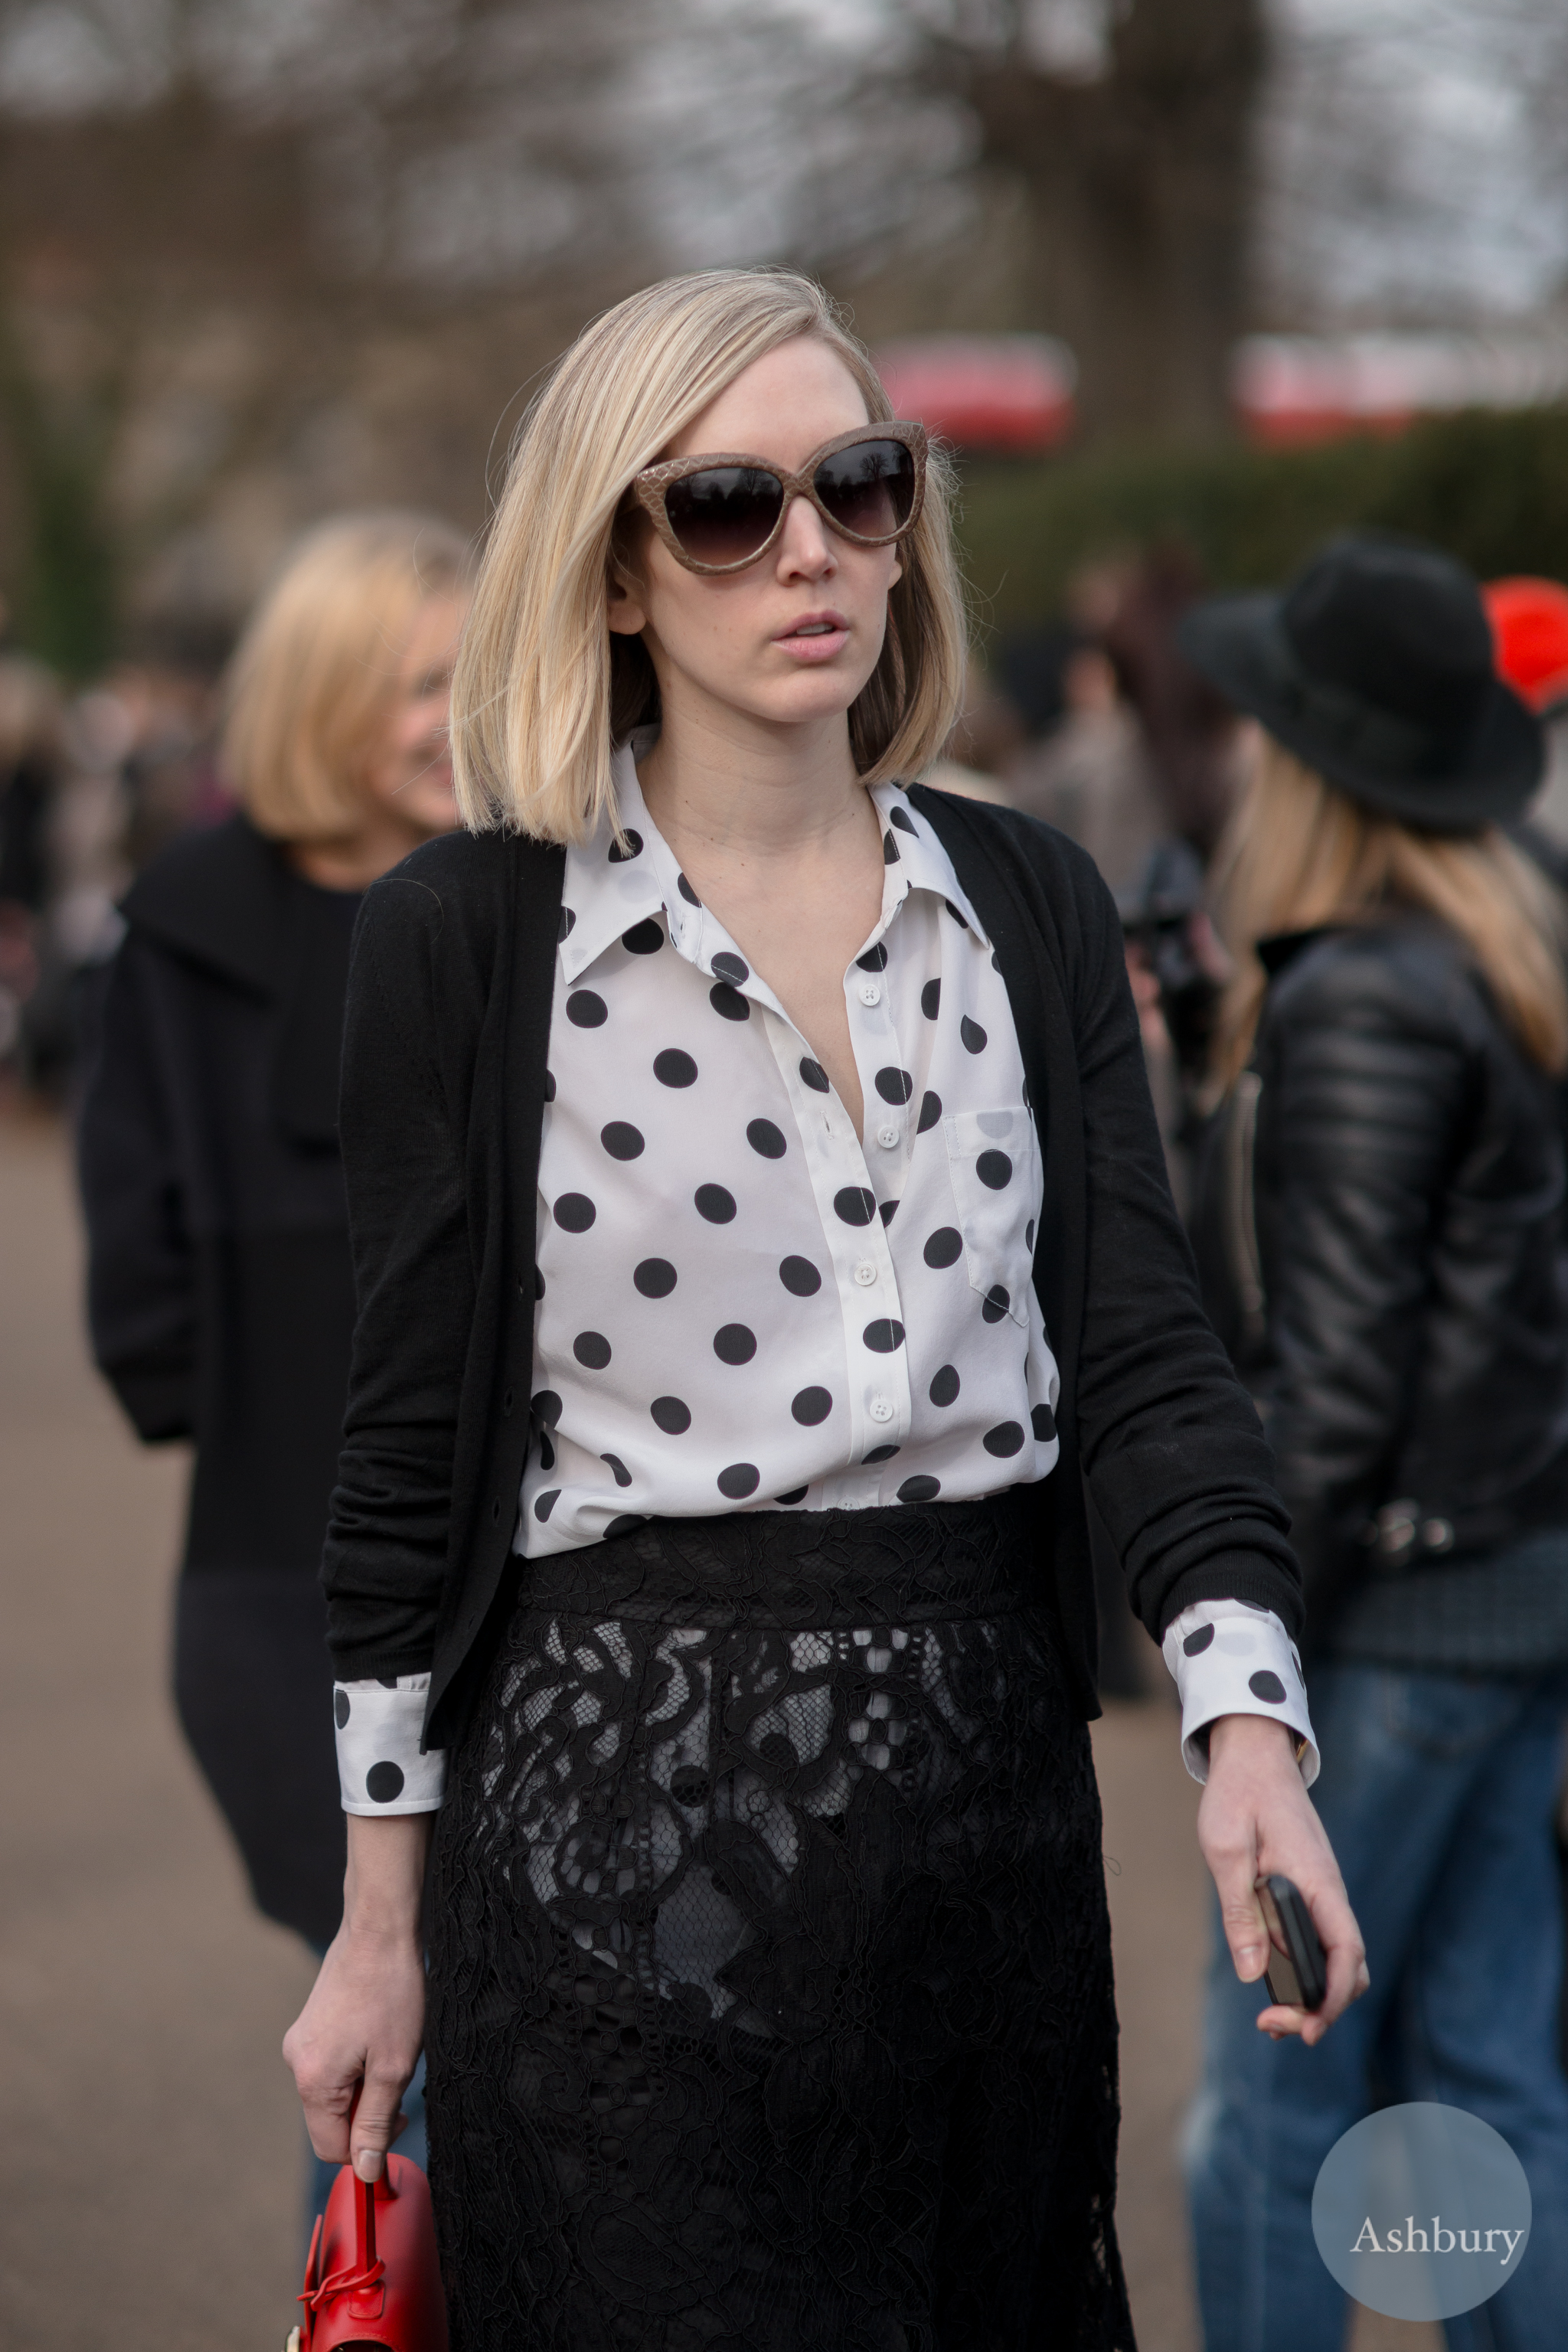 burberry aw14 street style london fashion week (15)